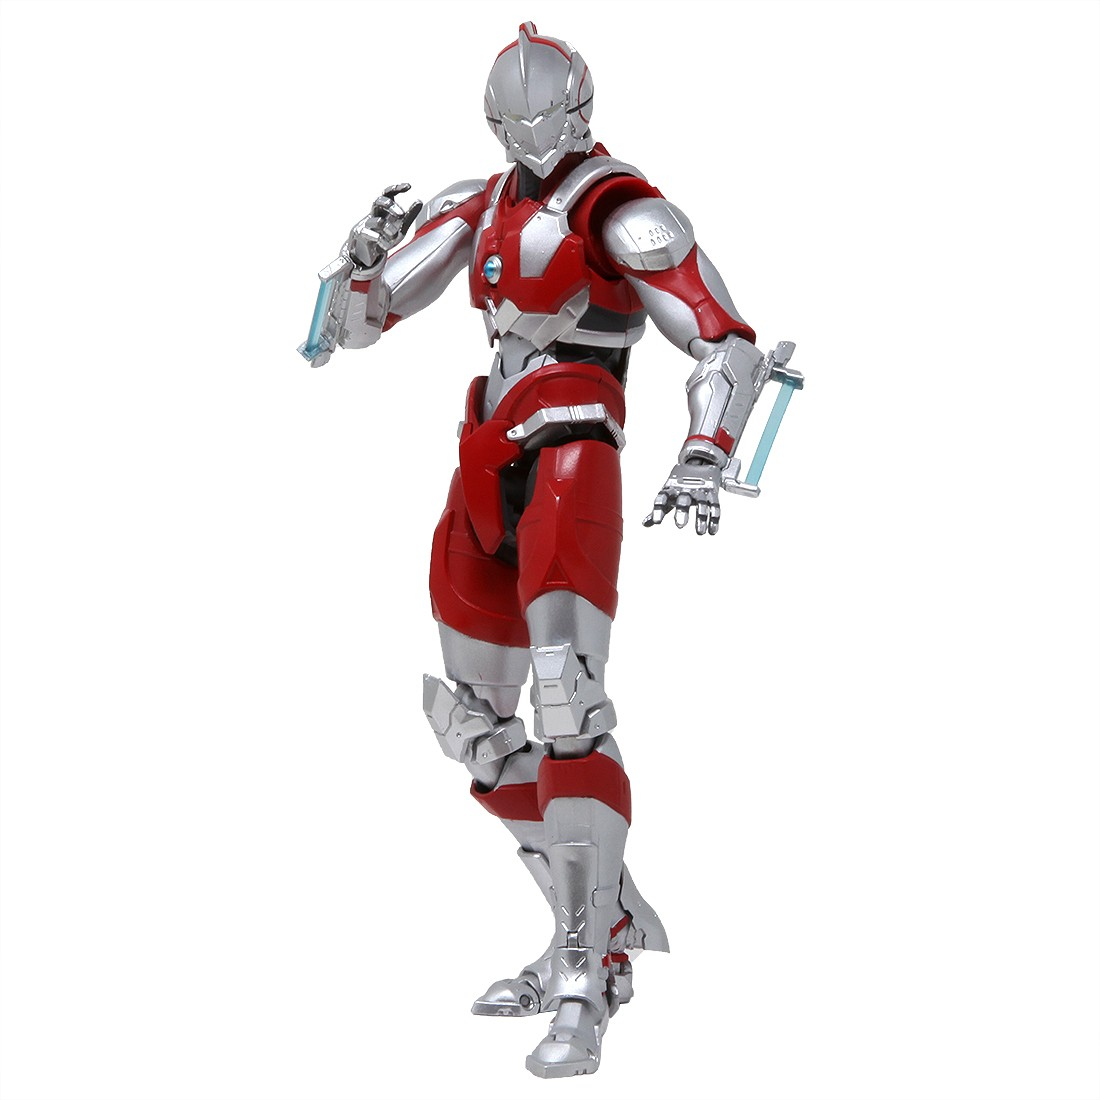 Bandai S.H.Figuarts Ultraman Netflix The Animation Ultraman Figure (silver)